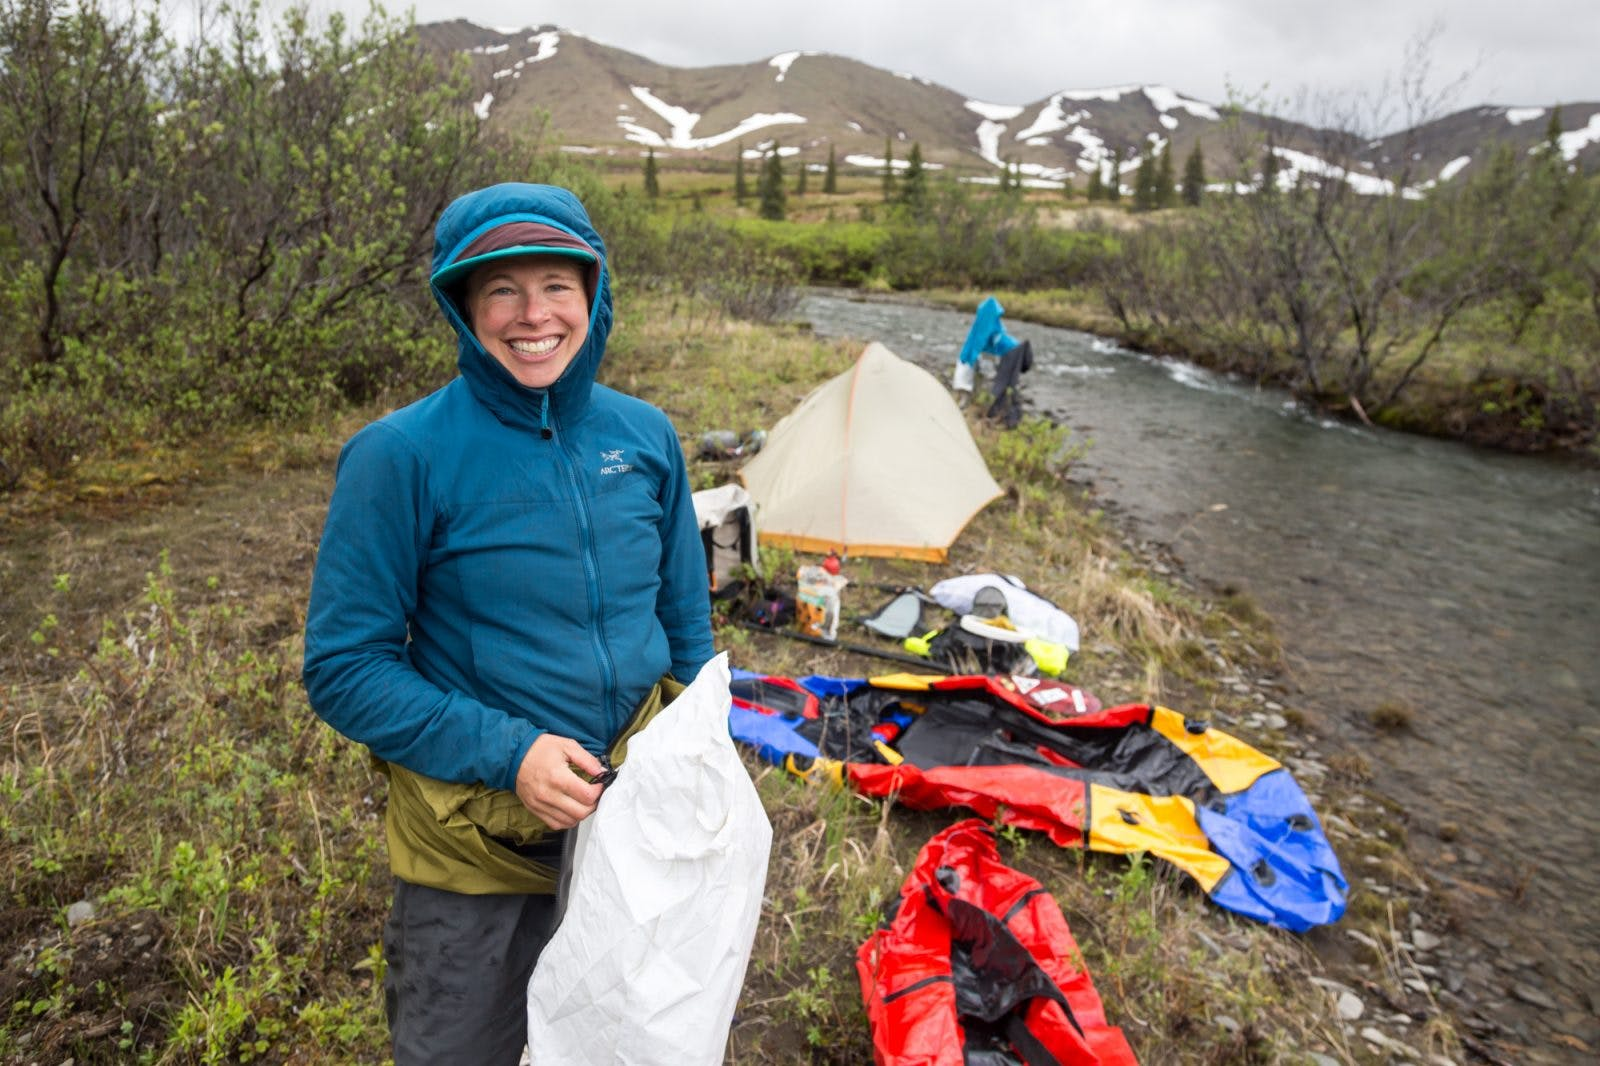 Sarah Miller Histand with her world-class smile on a backcountry packrafting trip! 📸: Luc Mehl.